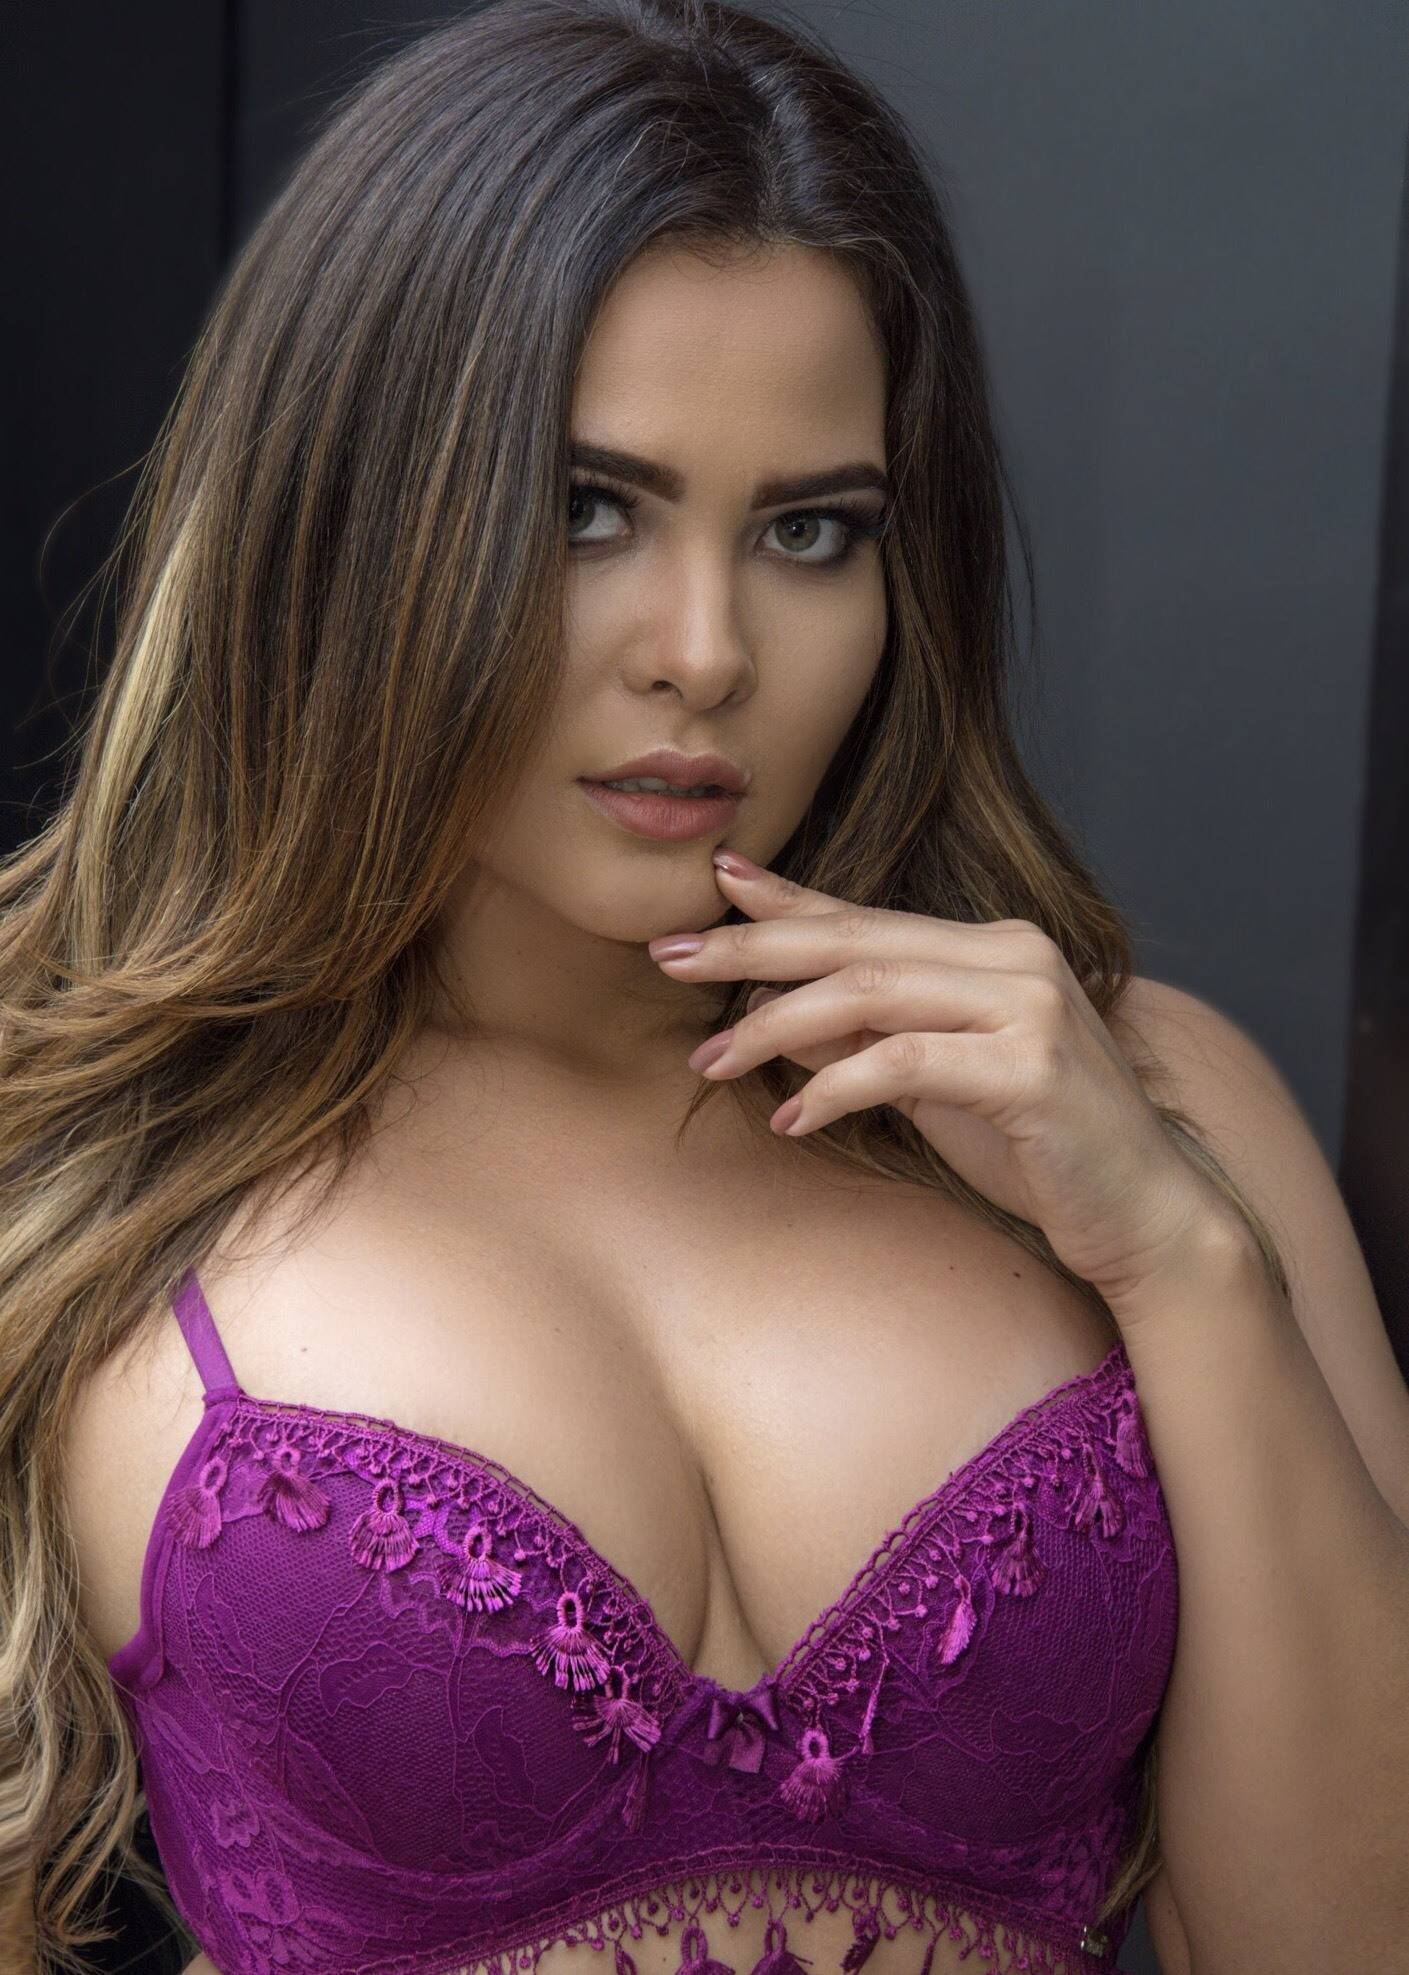 Pics Geisy Arruda nude (43 photos), Ass, Fappening, Feet, braless 2020